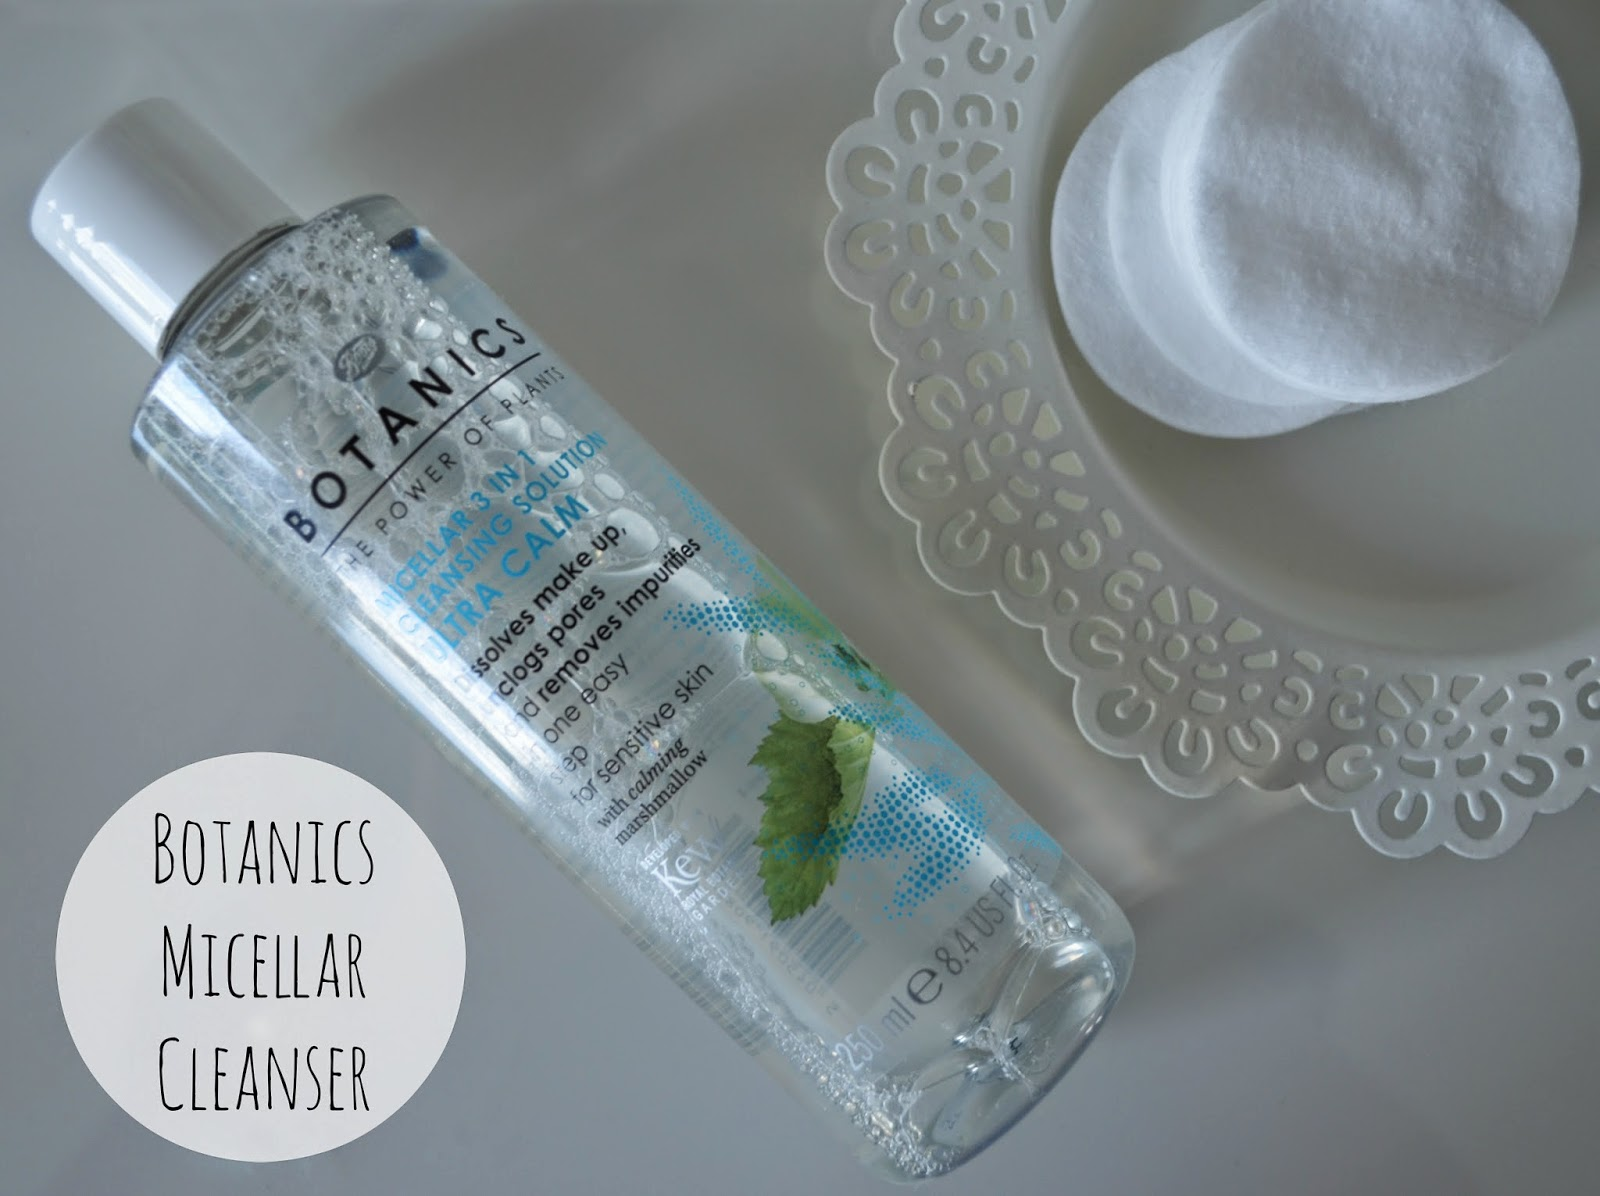 Botanics Micellar 3 in 1 Cleansing Solution Extra Calm